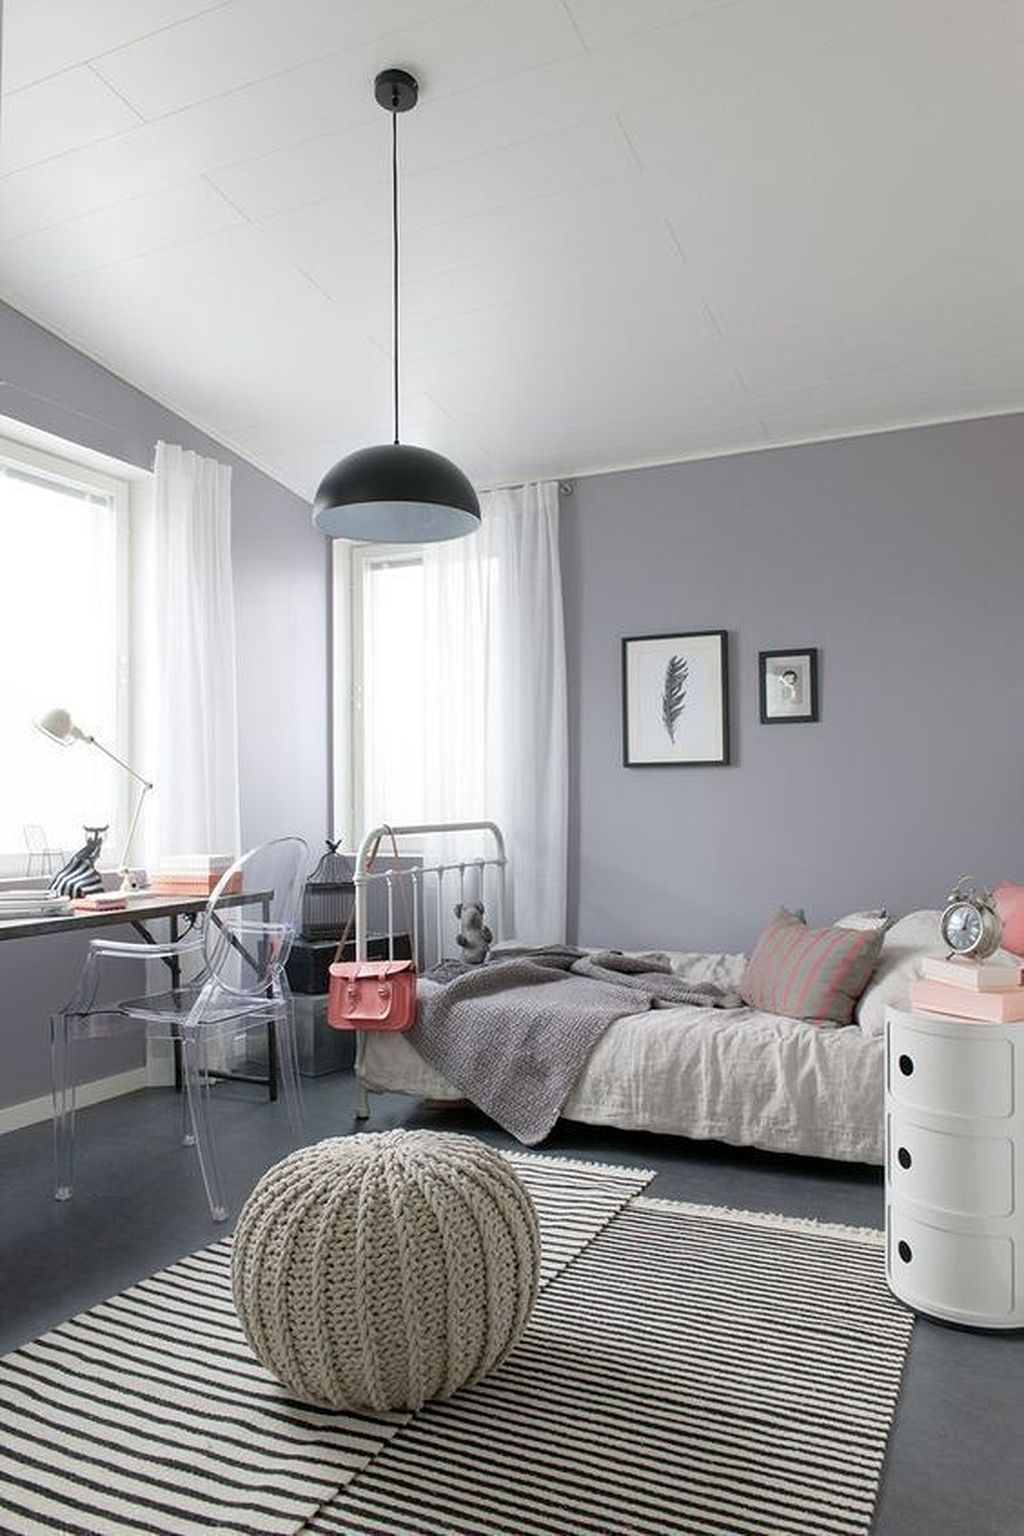 New bedroom interior design  brilliant ideas to improve teen girl room  play spaces bed room